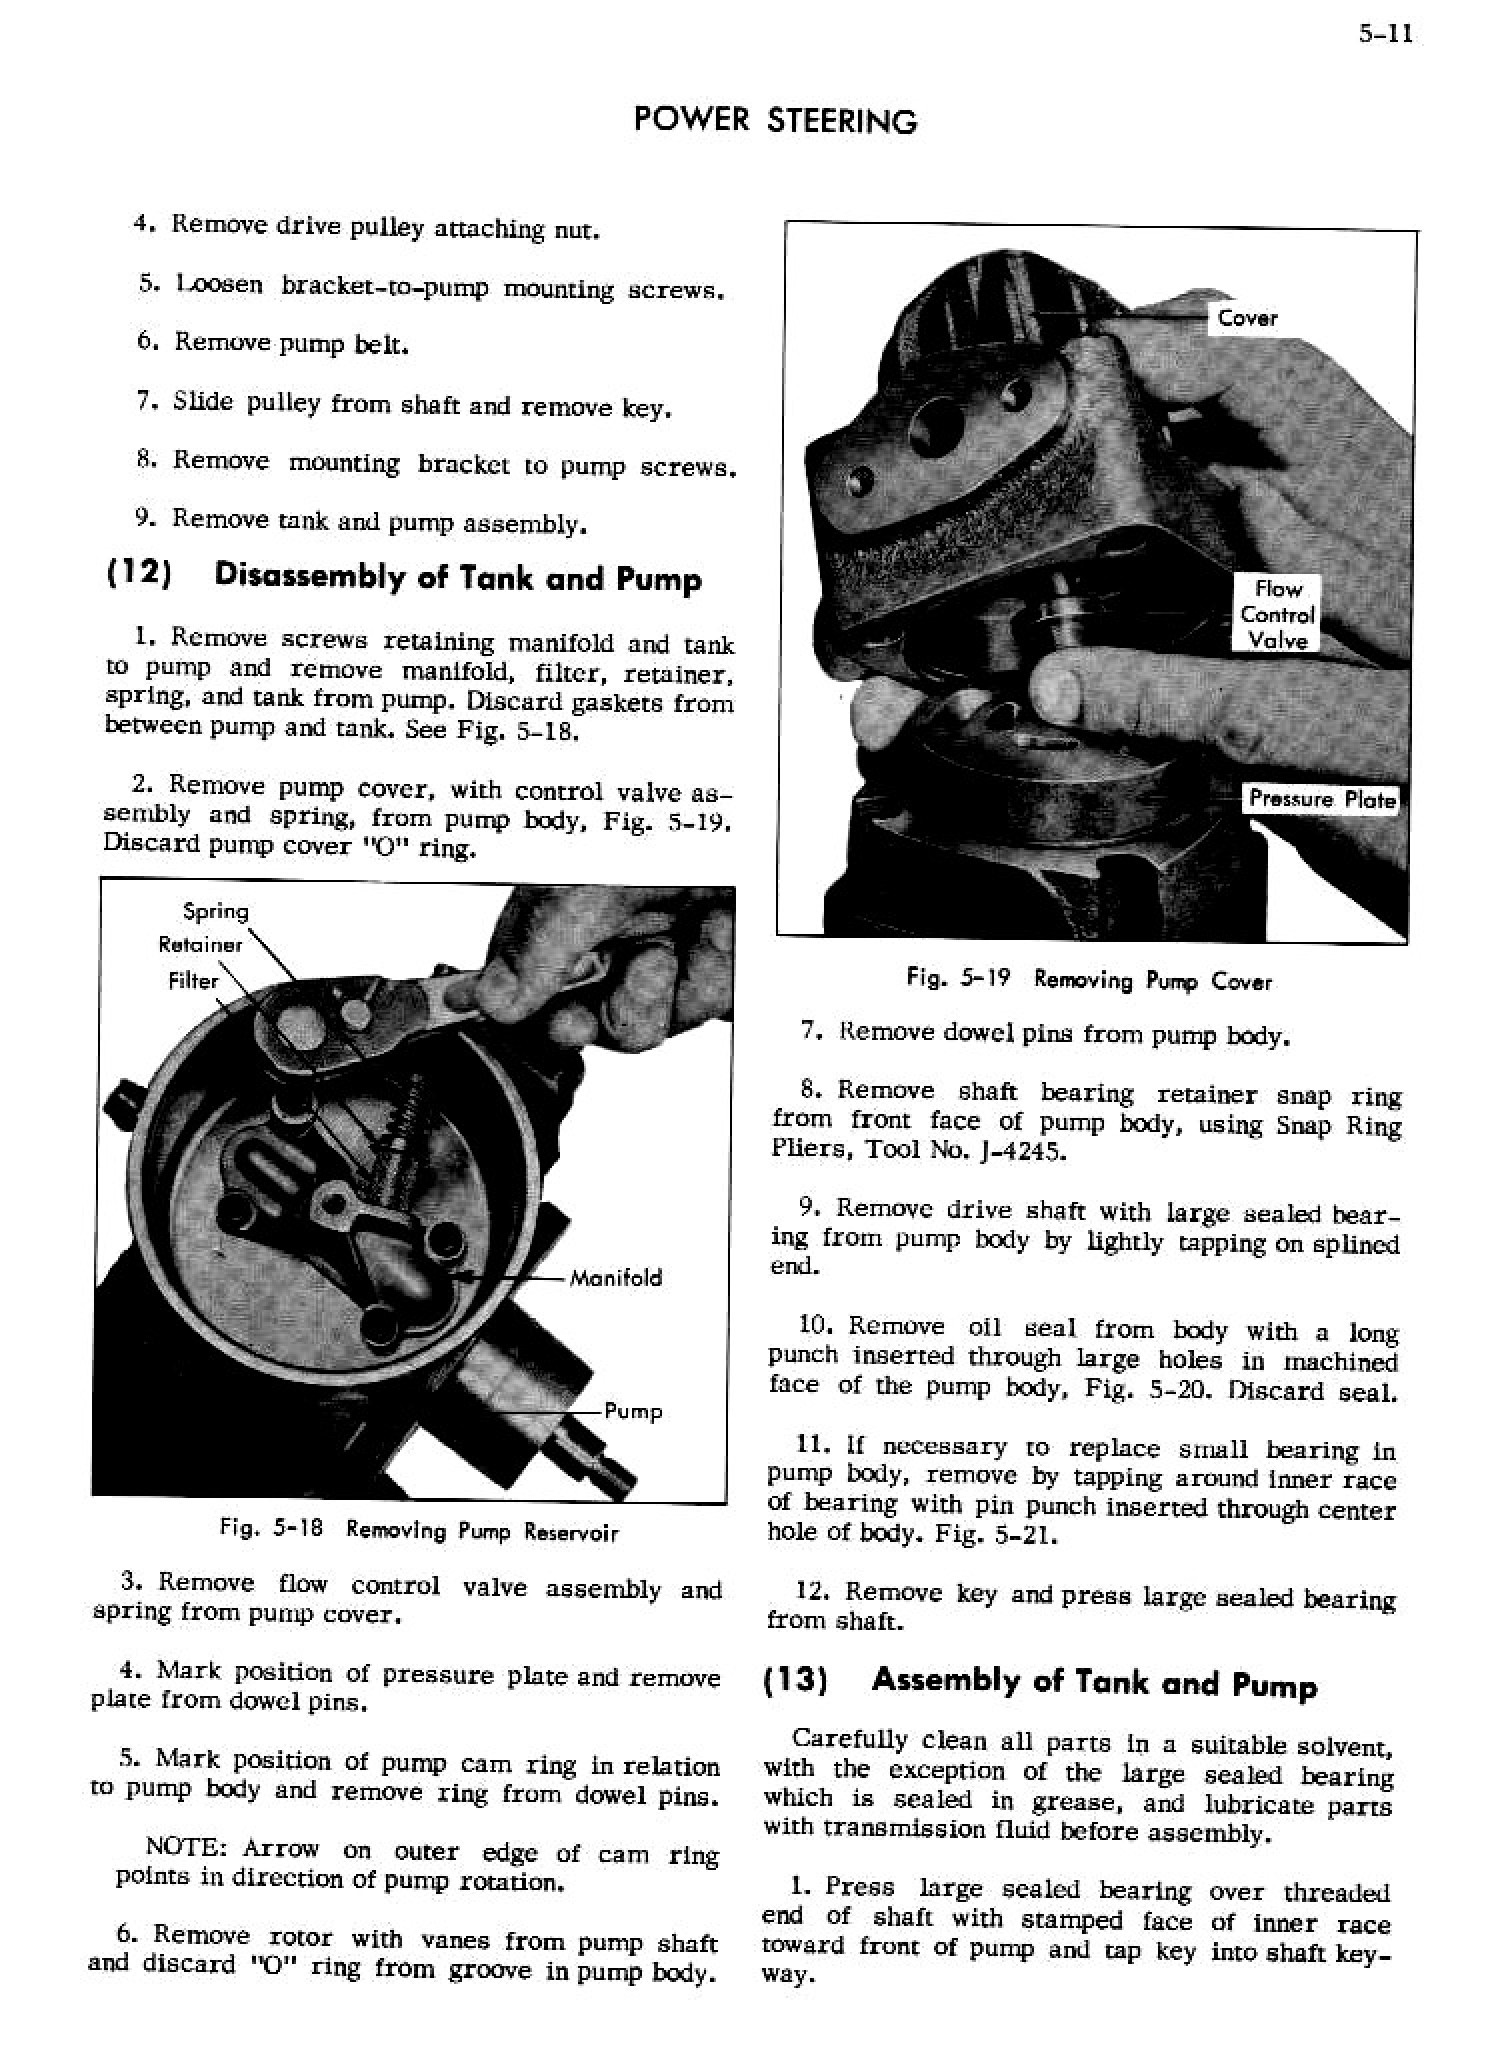 1956 Cadillac Shop Manual- Power Steering Page 11 of 26